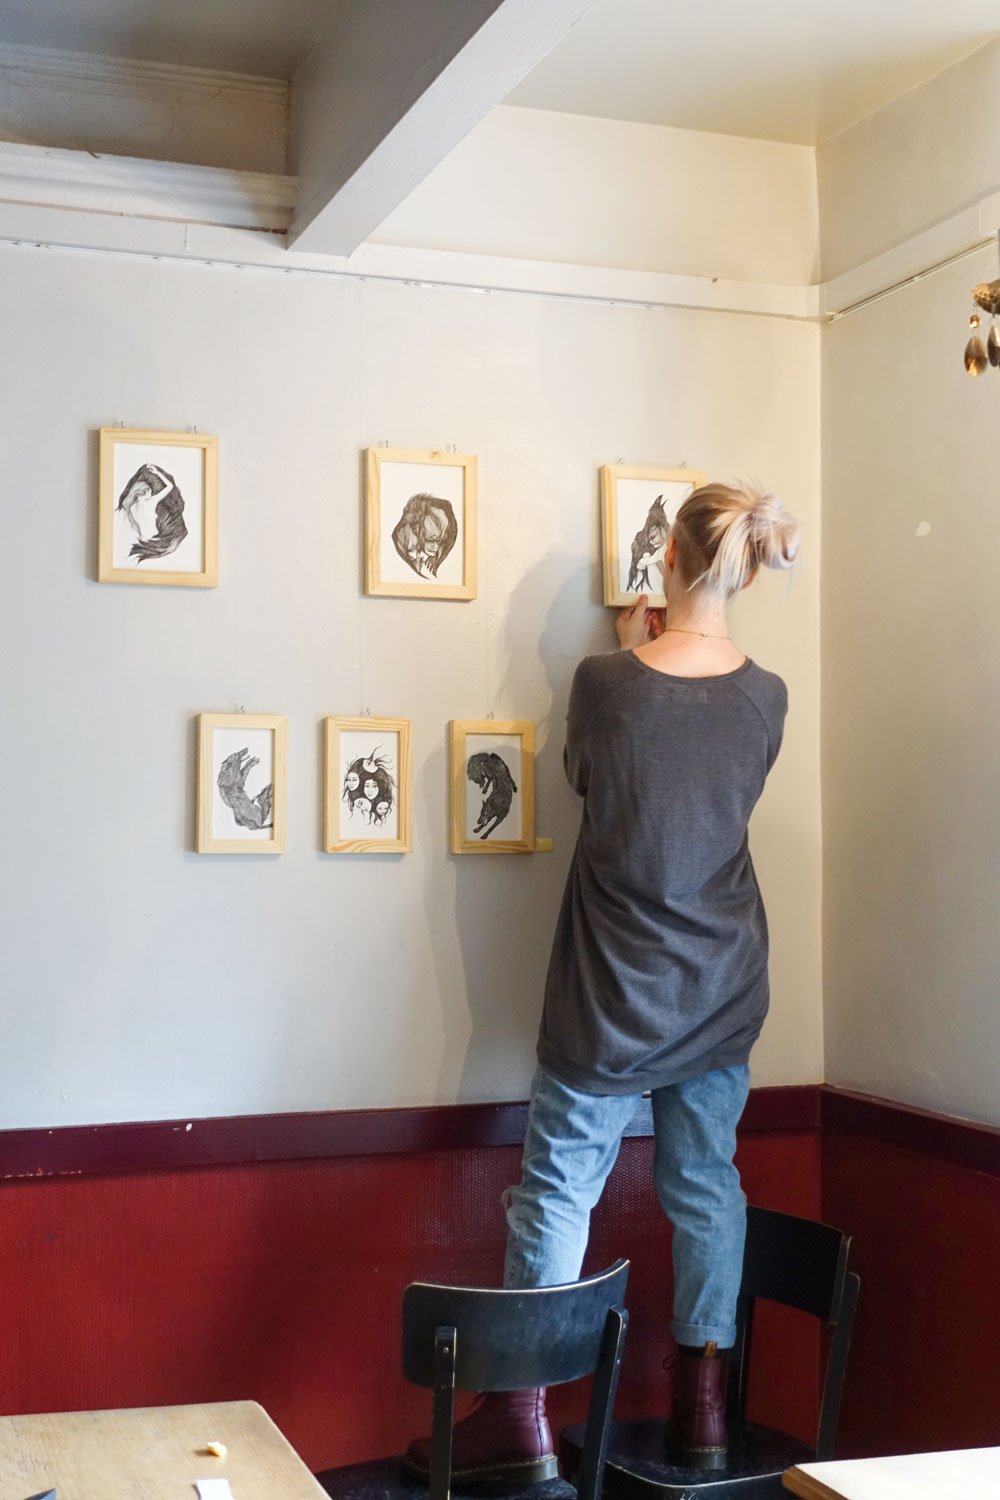 Marcelle-collectif-Exposition-Bossette-montage_04.jpg